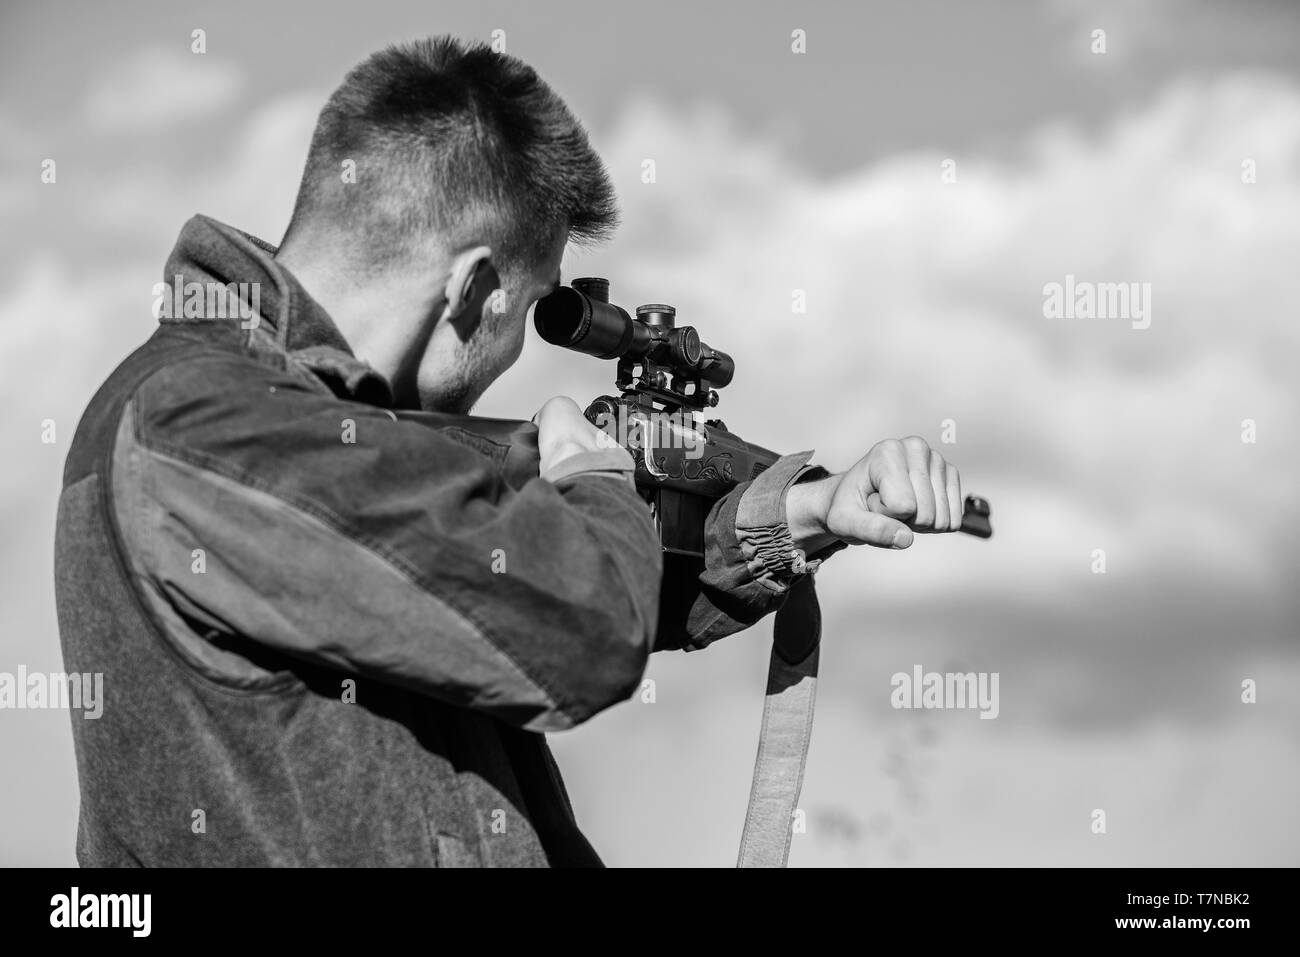 Hunting optics equipment for professionals. Brutal masculine hobby. Man aiming target nature background. Aiming skills. Hunter hold rifle aiming. On my target. Bearded hunter spend leisure hunting. - Stock Image